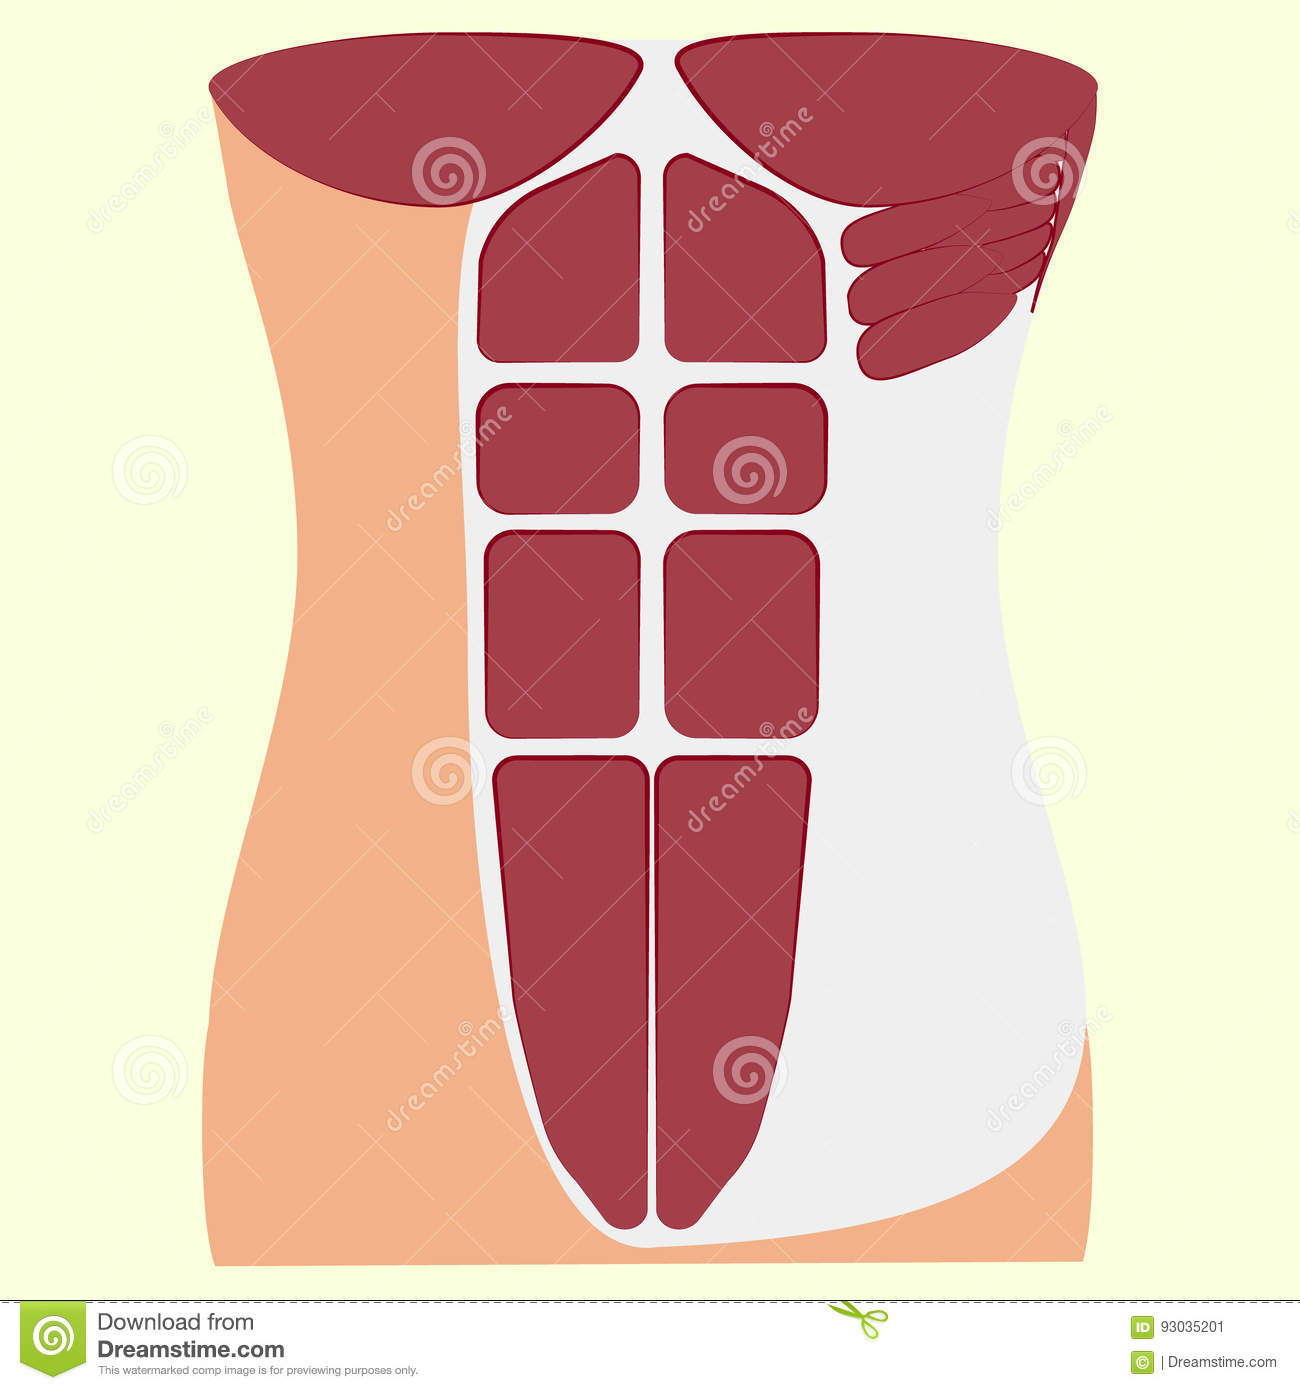 Pectoralis Major Muscle, Muscles Of Chest, Stock Vector ...